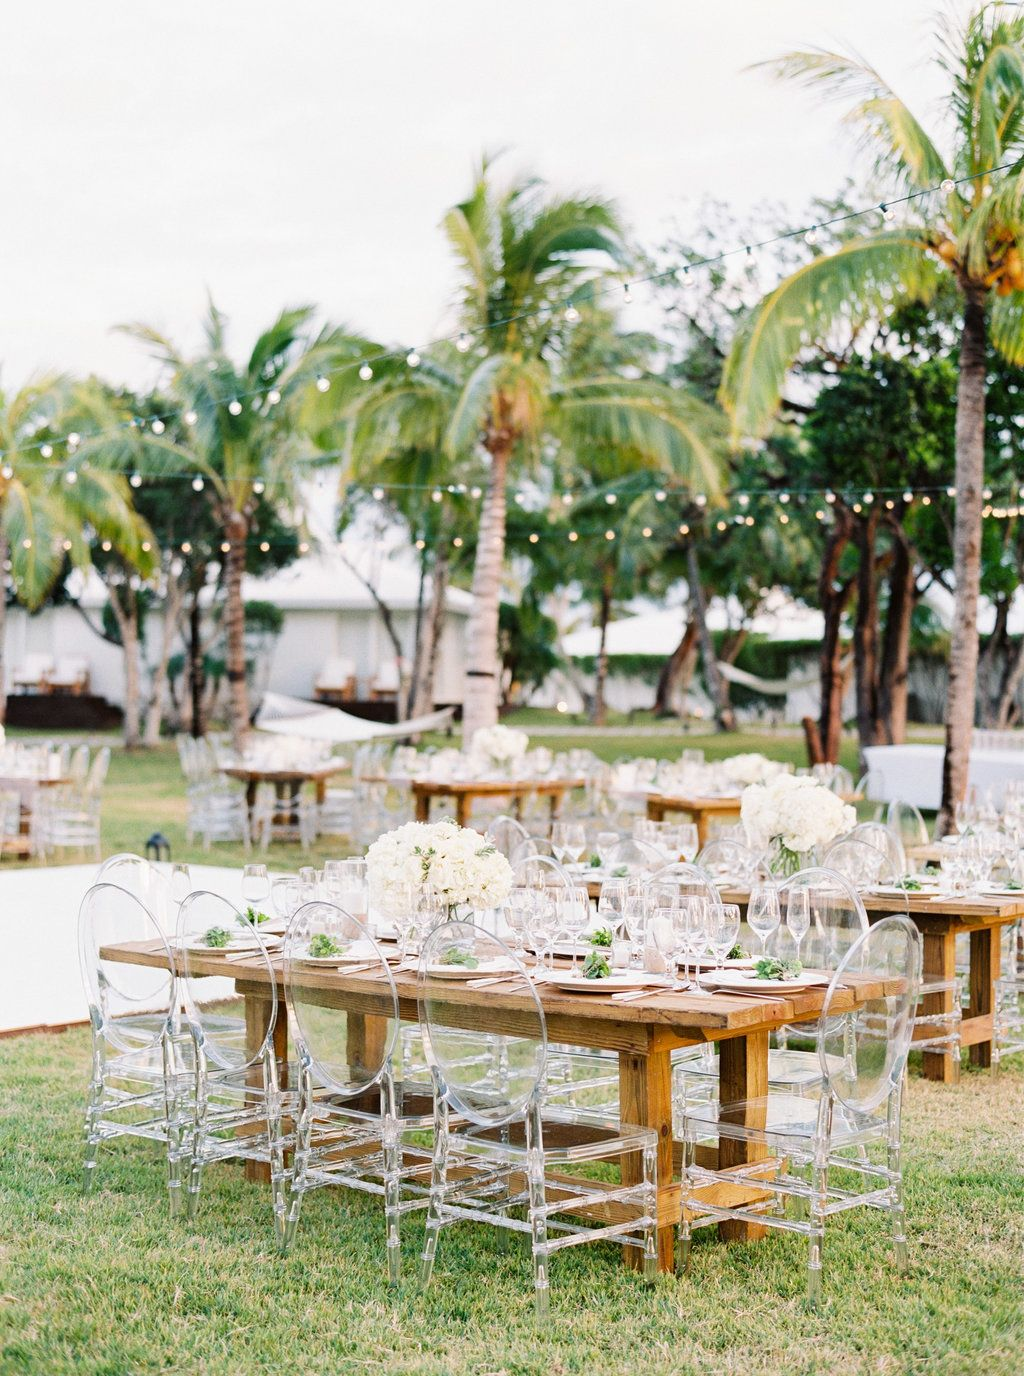 Wedding decor with ghost chairs  A Dreamy Destination Wedding in The Bahamas  Destination wedding